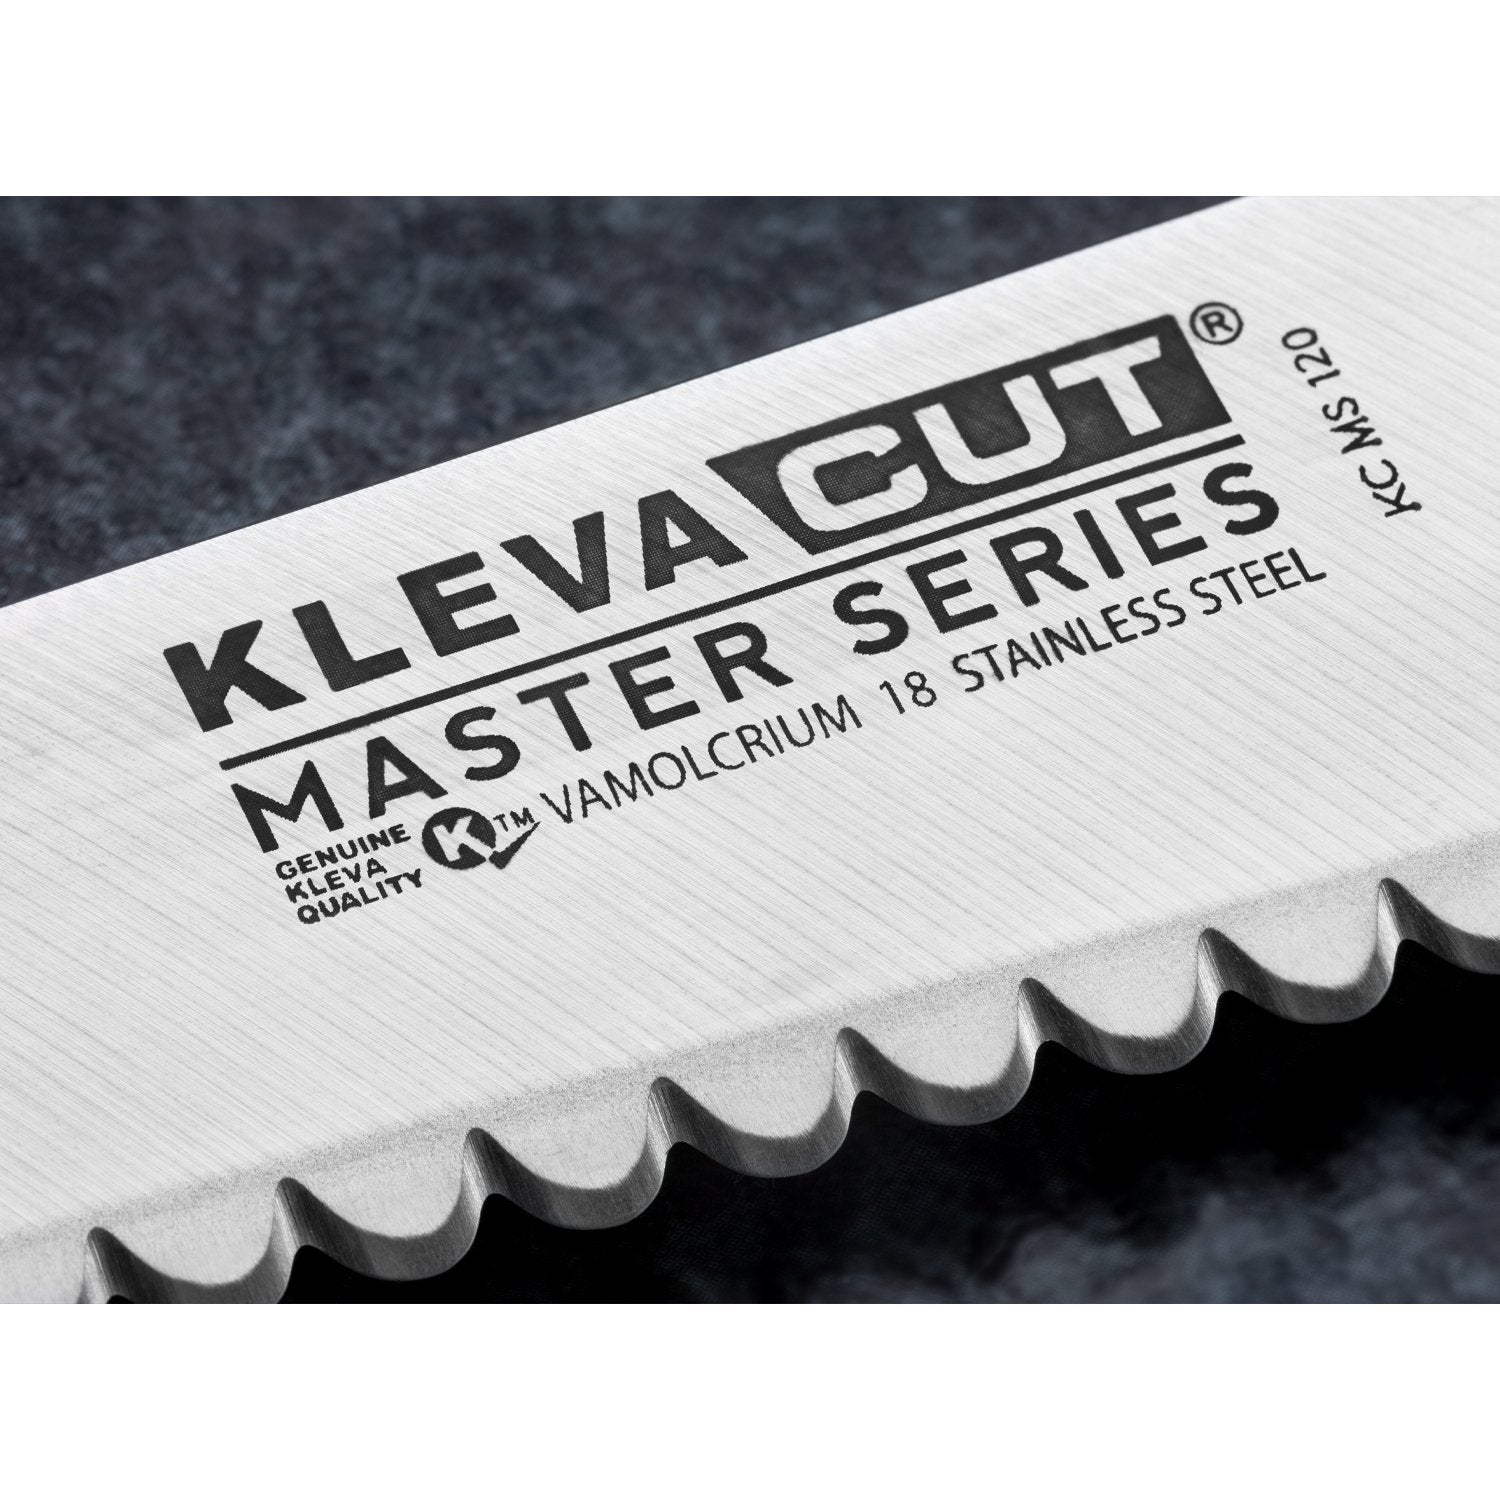 TV Special Kleva Cut Master Series 6 Piece Knife Set Plus FREE Sharpener + 10 Year Guarantee - Choose Your Bonus Gifts!